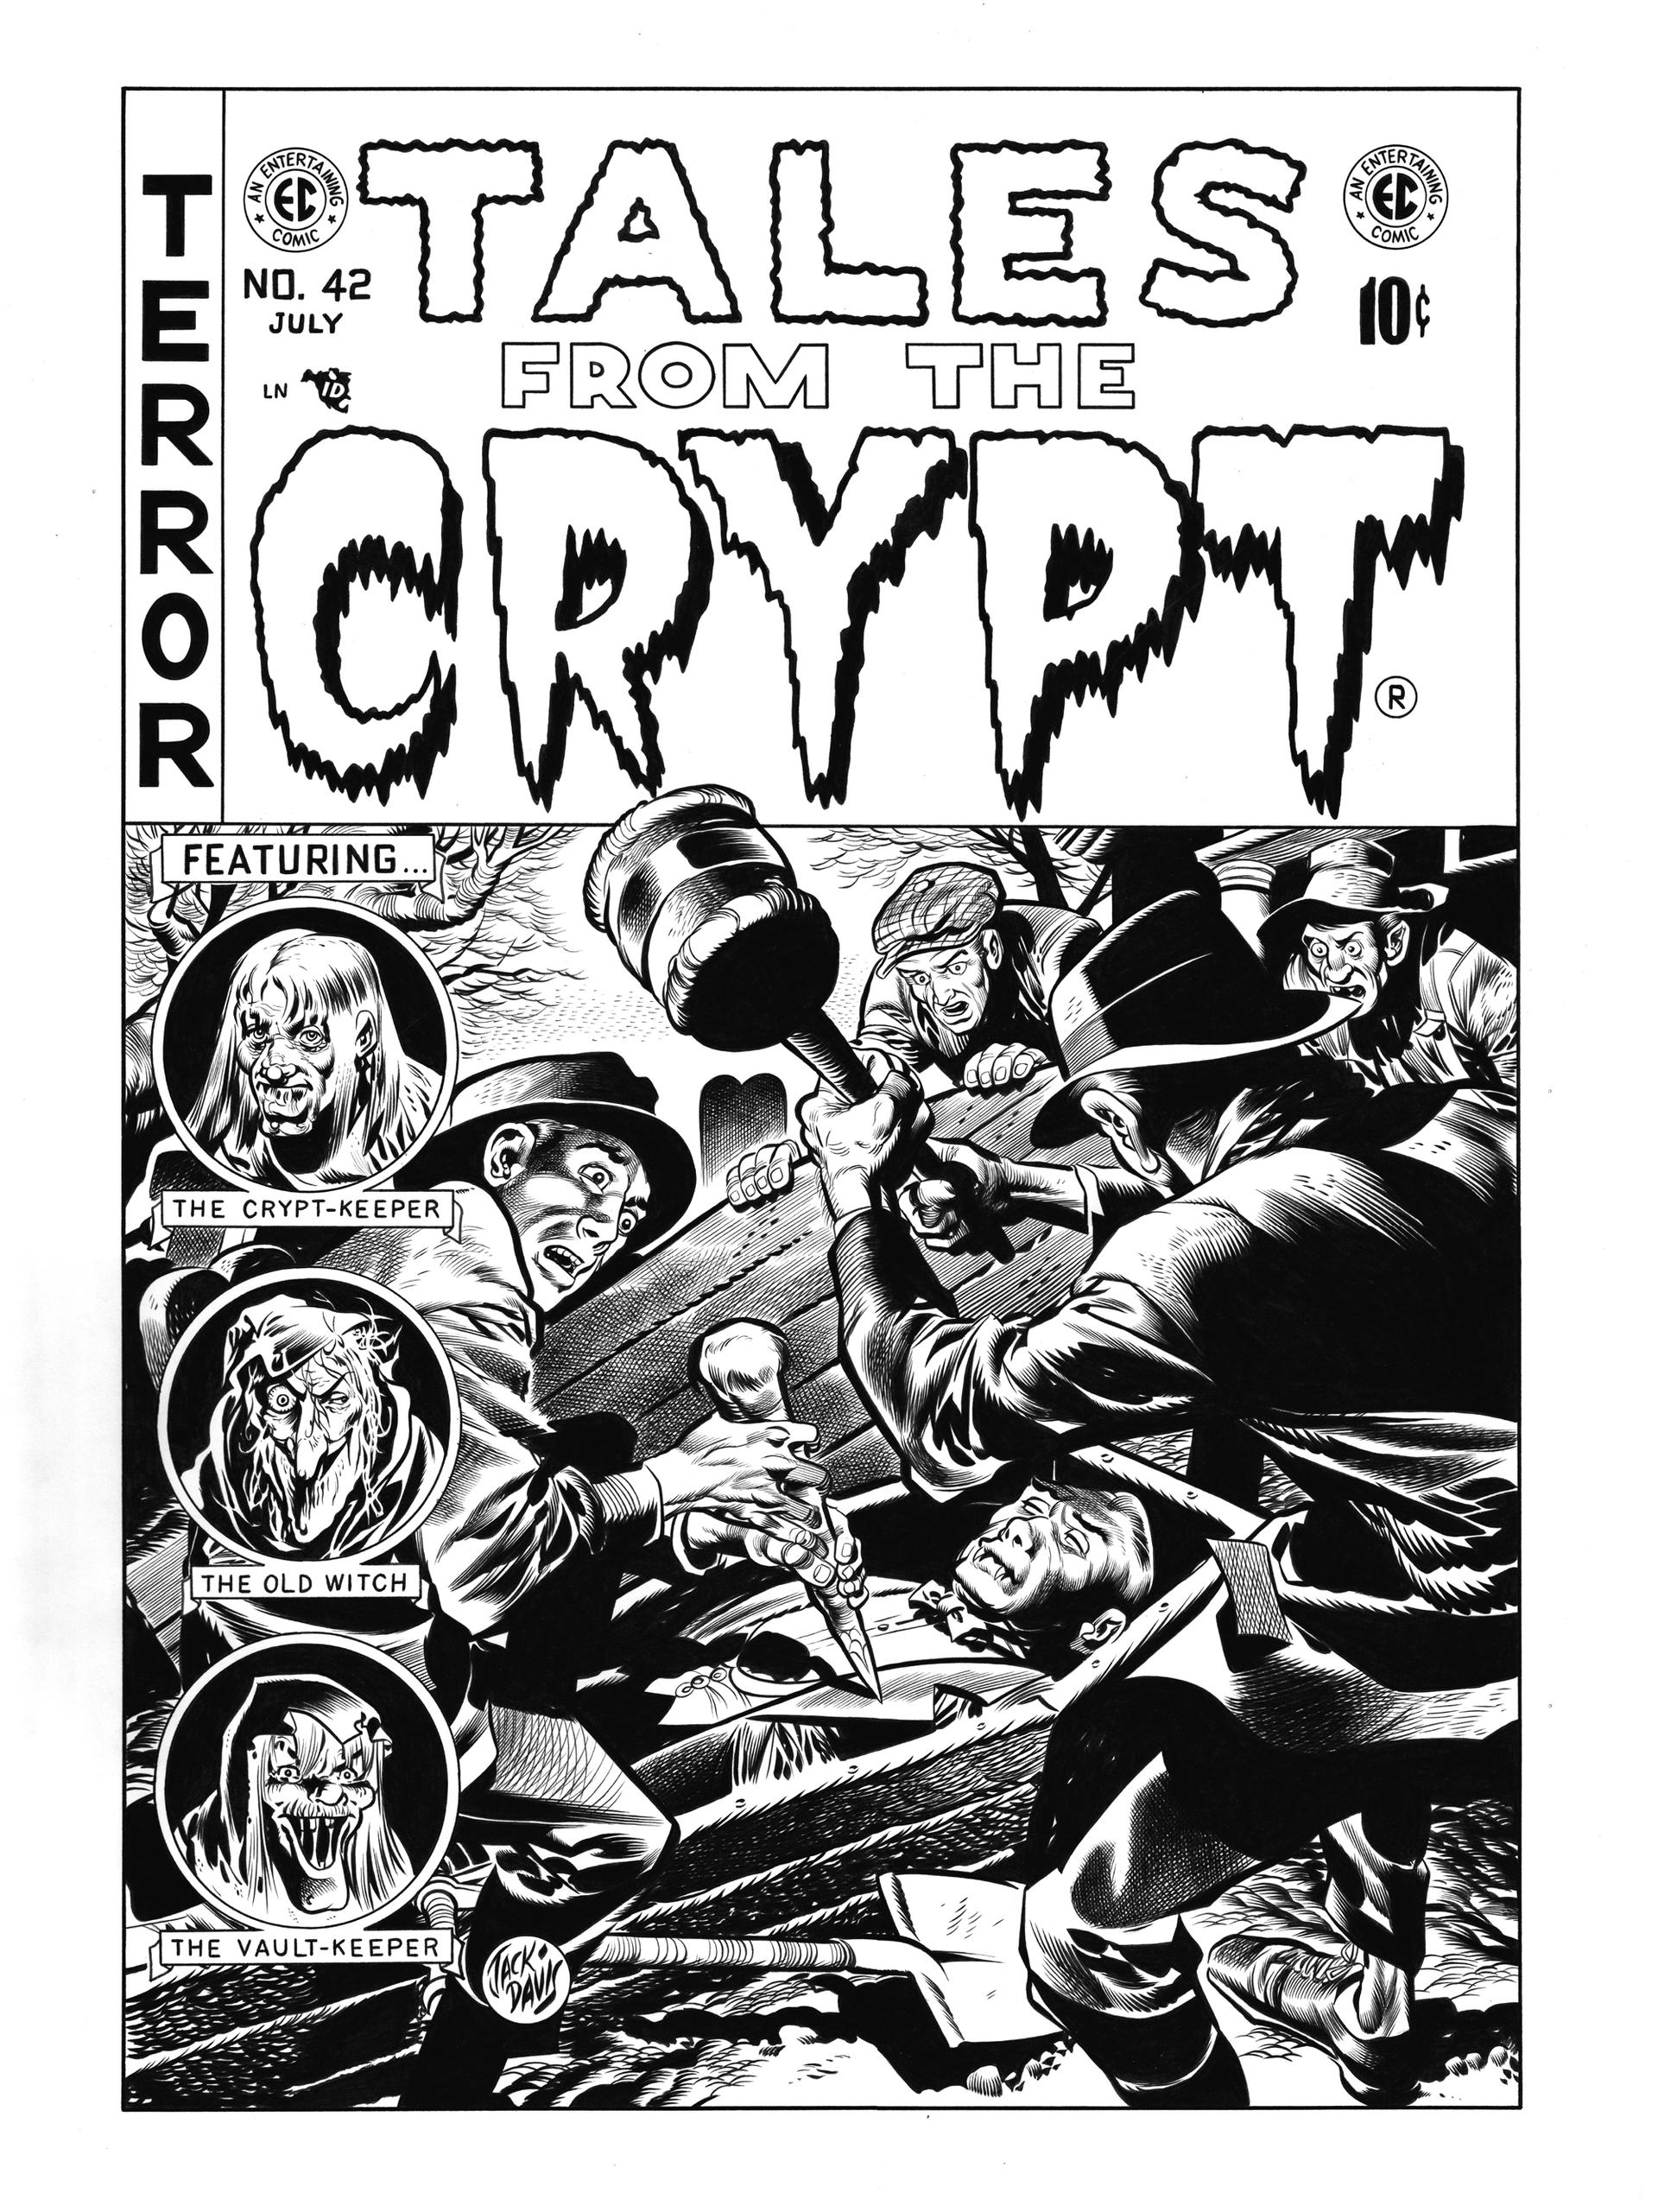 Tales from the Crypt #42 Cover Recreation